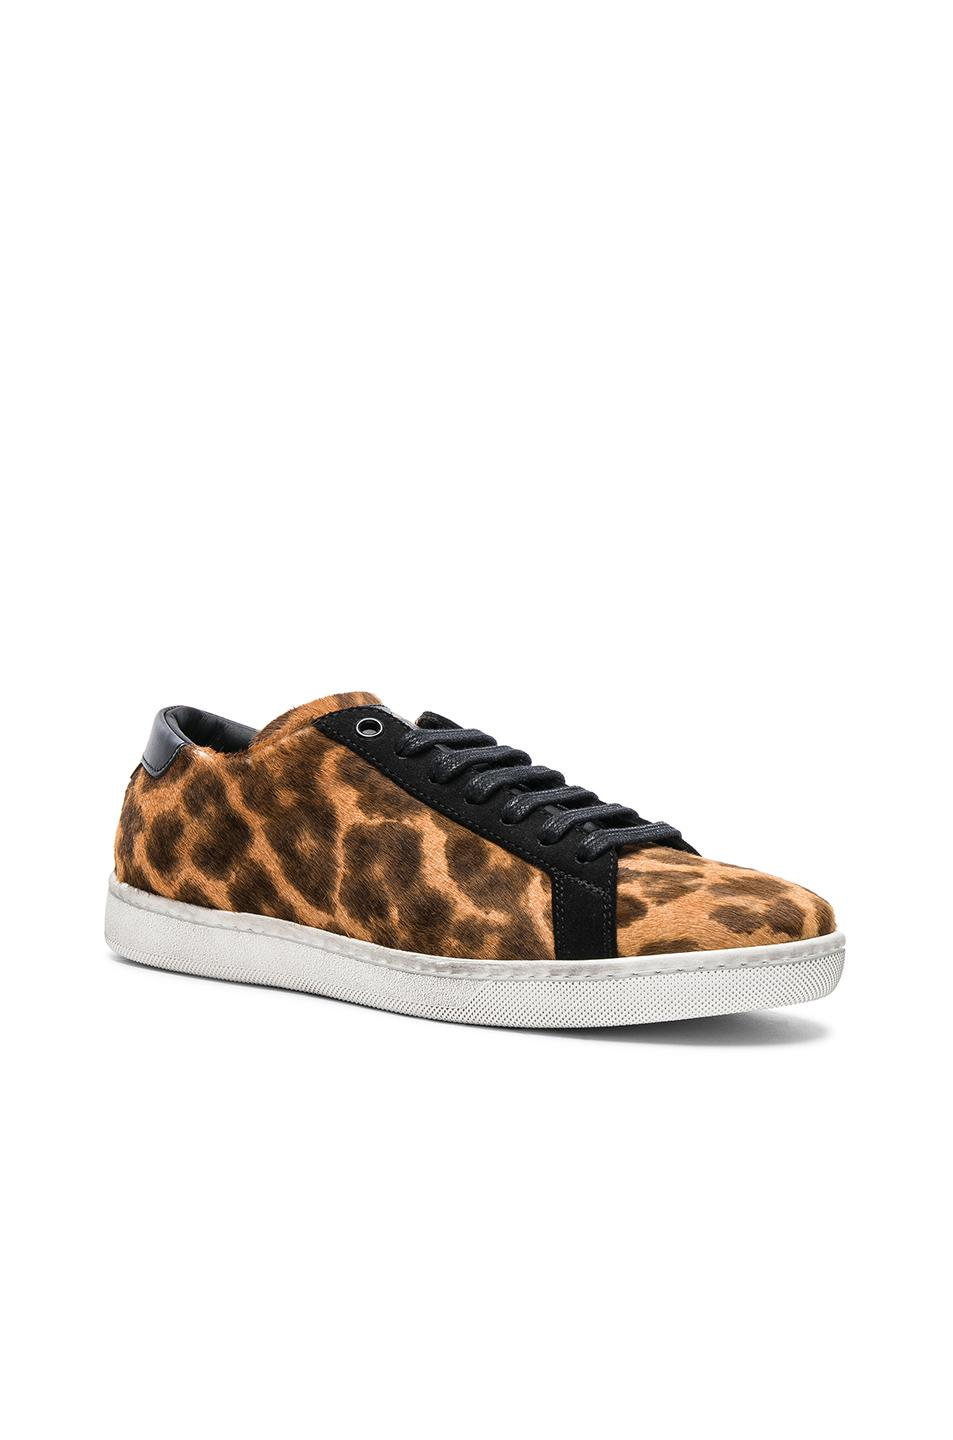 Saint Laurent Pony Hair & Suede Court Classic Sneakers in ,Animal Print.